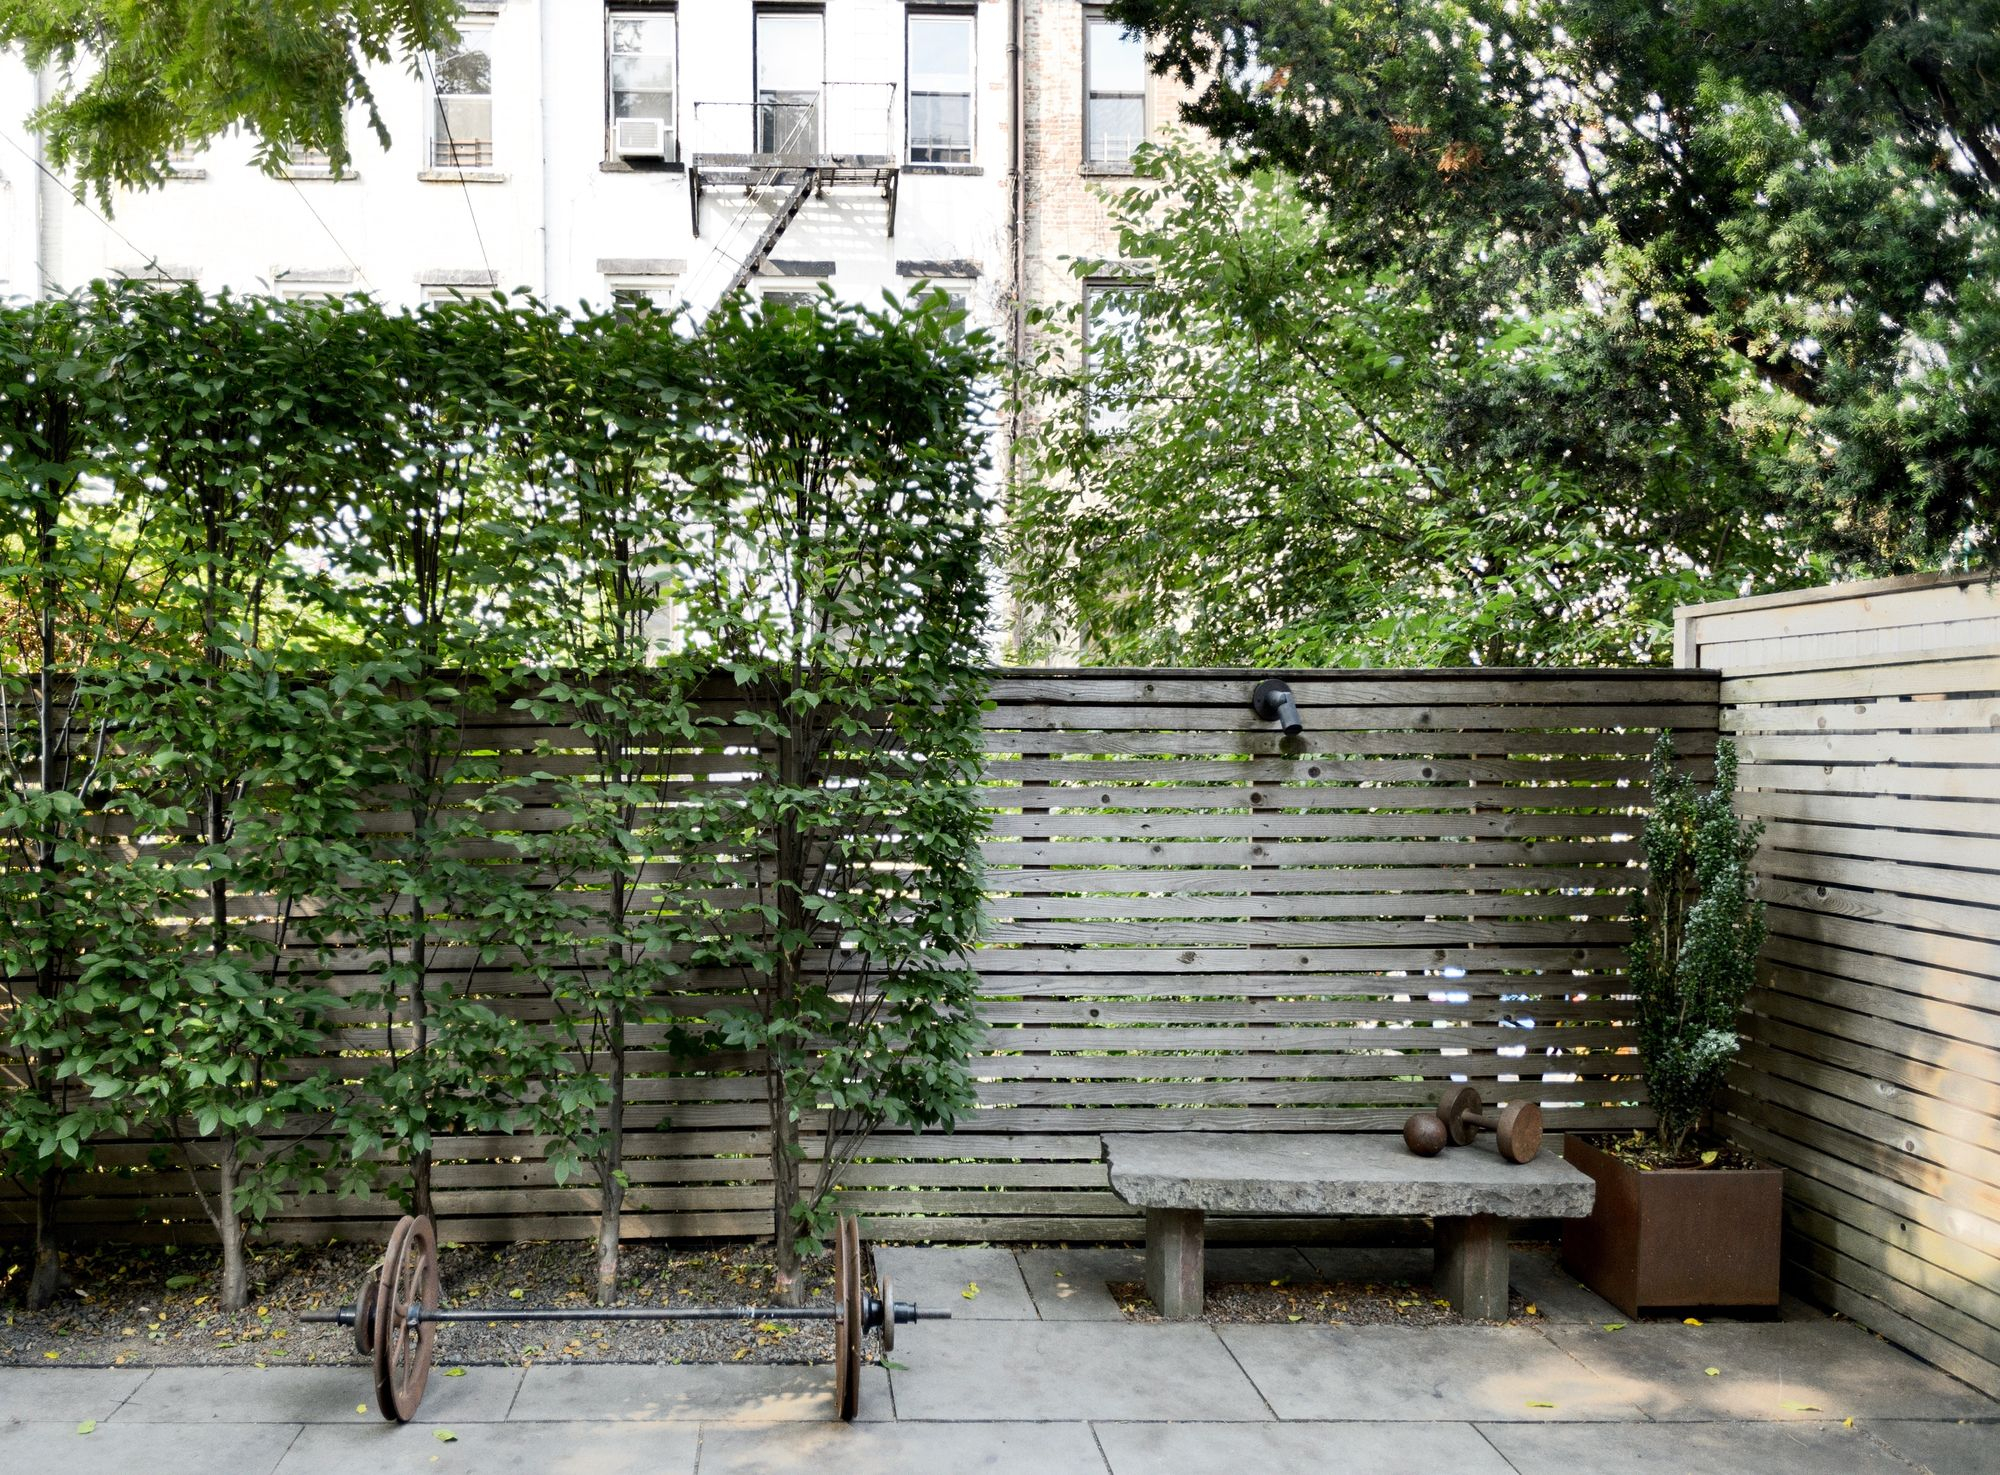 Garden Hacks 10 Ideas For Privacy Screens Gardenista for Privacy Screen Ideas For Backyard